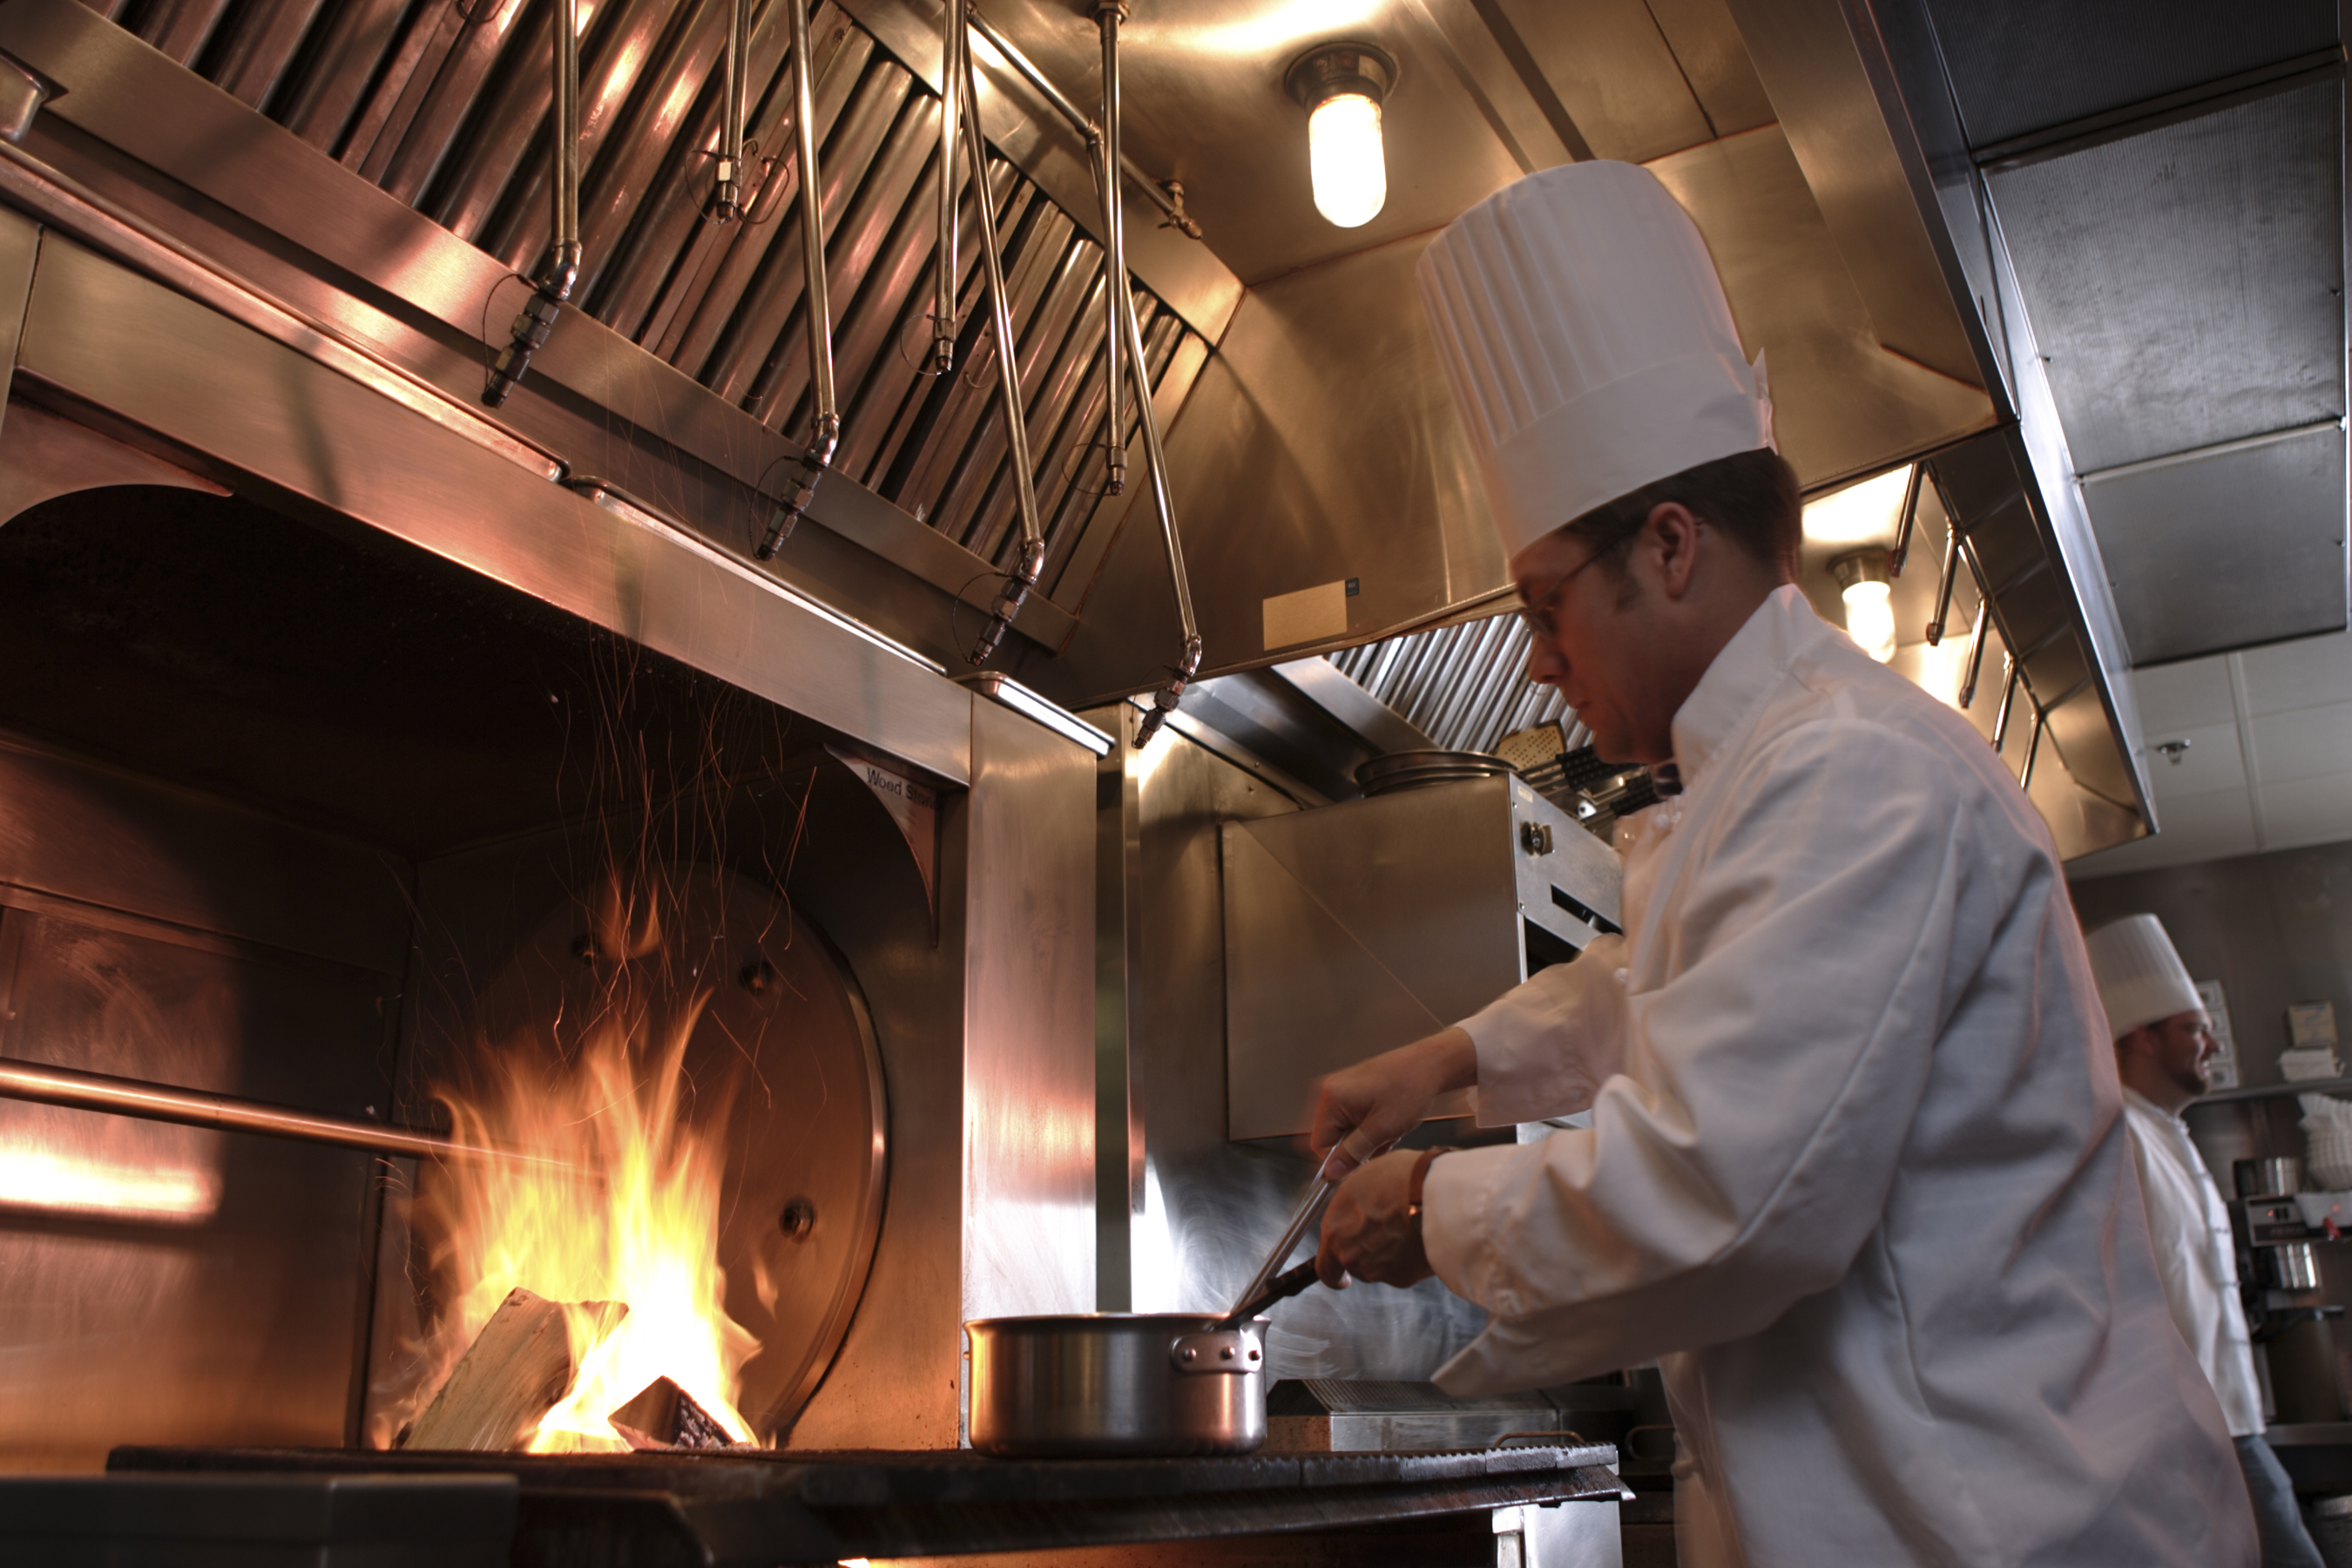 Commercial Kitchen Safety Manual